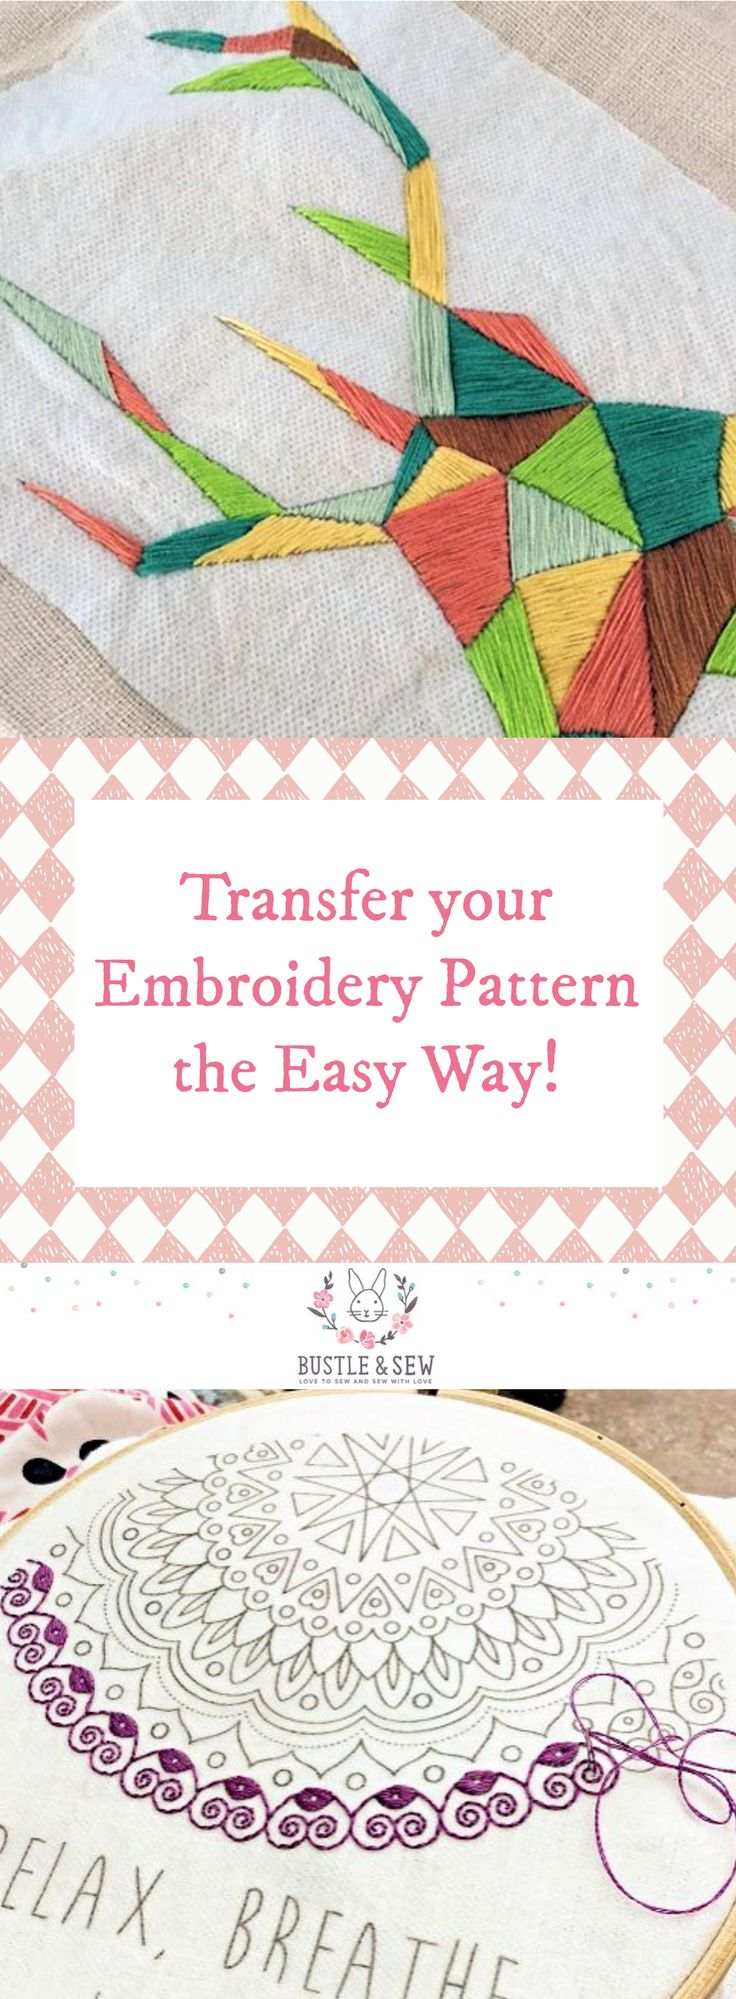 Transfer your embroidery pattern the easy way tutorial from transfer your embroidery pattern the easy way tutorial from bustle sew embroidery pinterest bustle embroidery and tutorials bankloansurffo Gallery